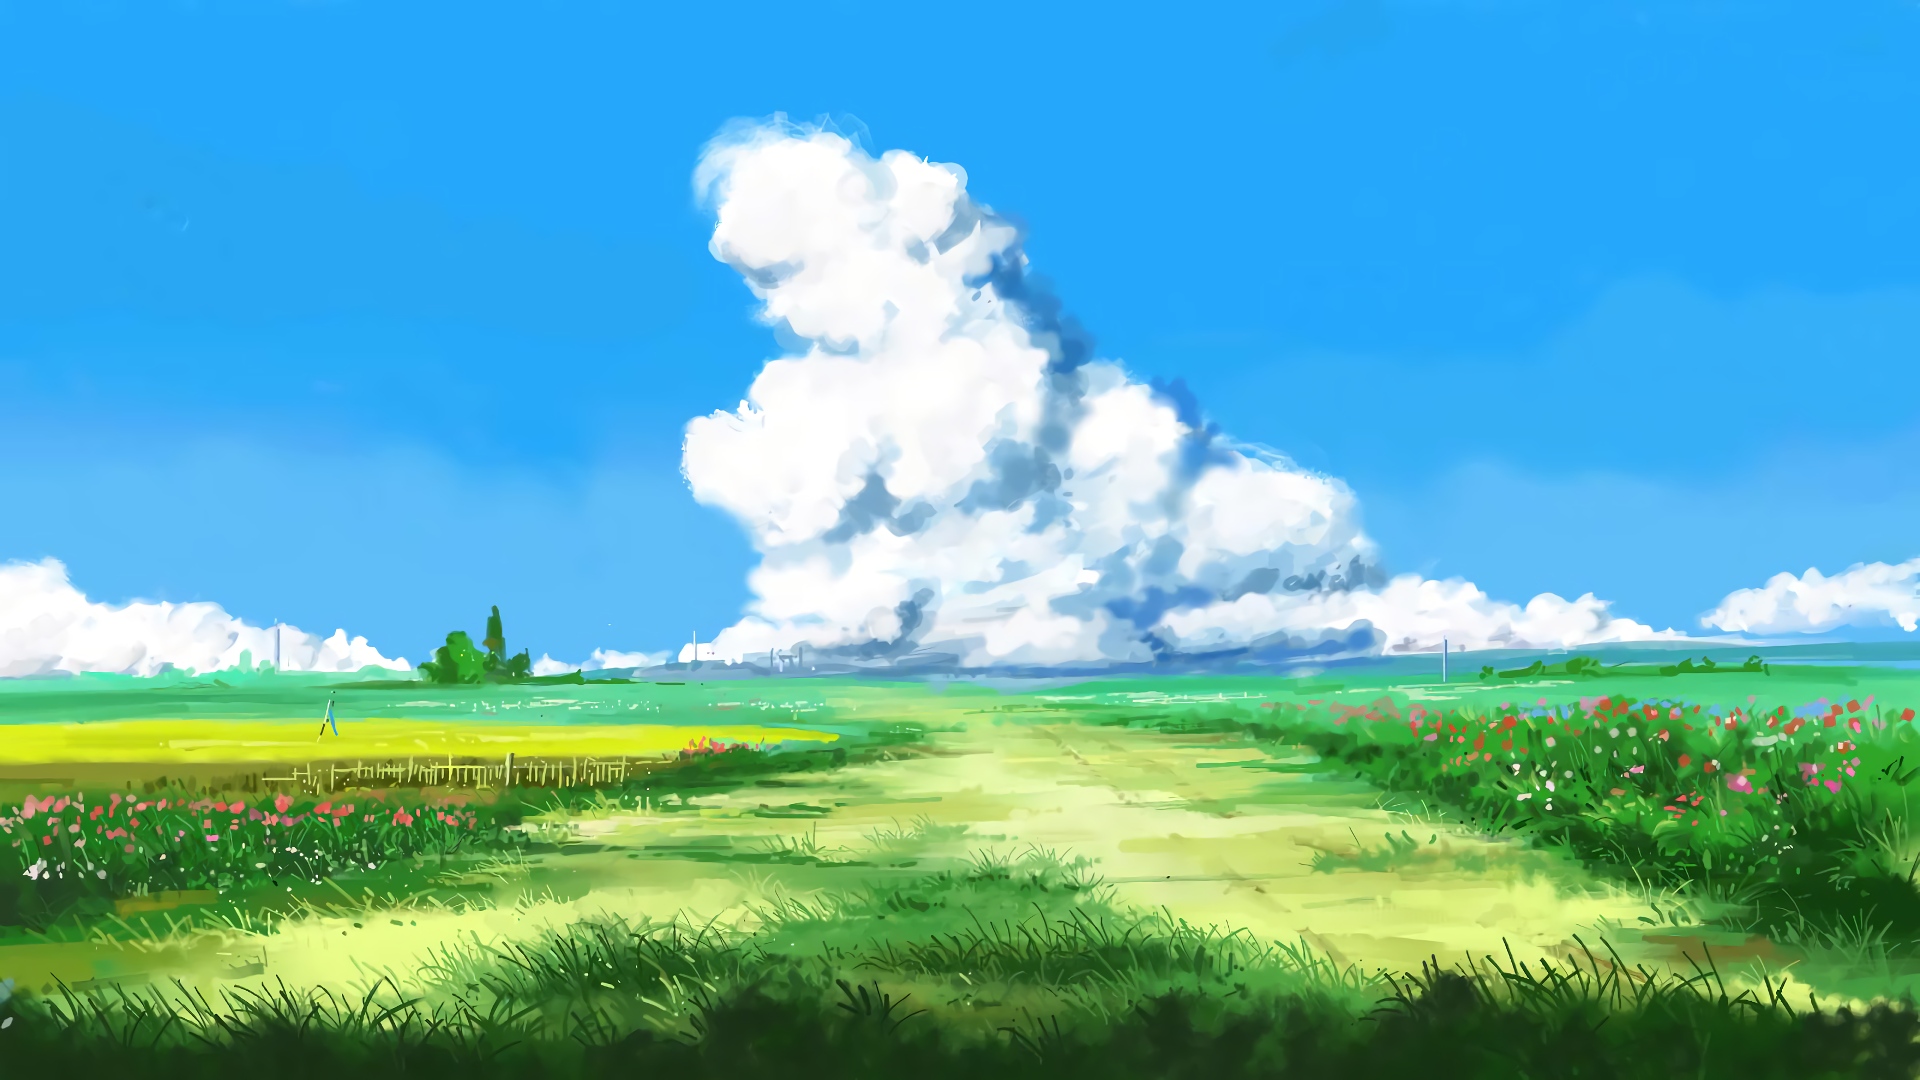 Anime - Original  Artwork Anime Original (Anime) Field Wallpaper